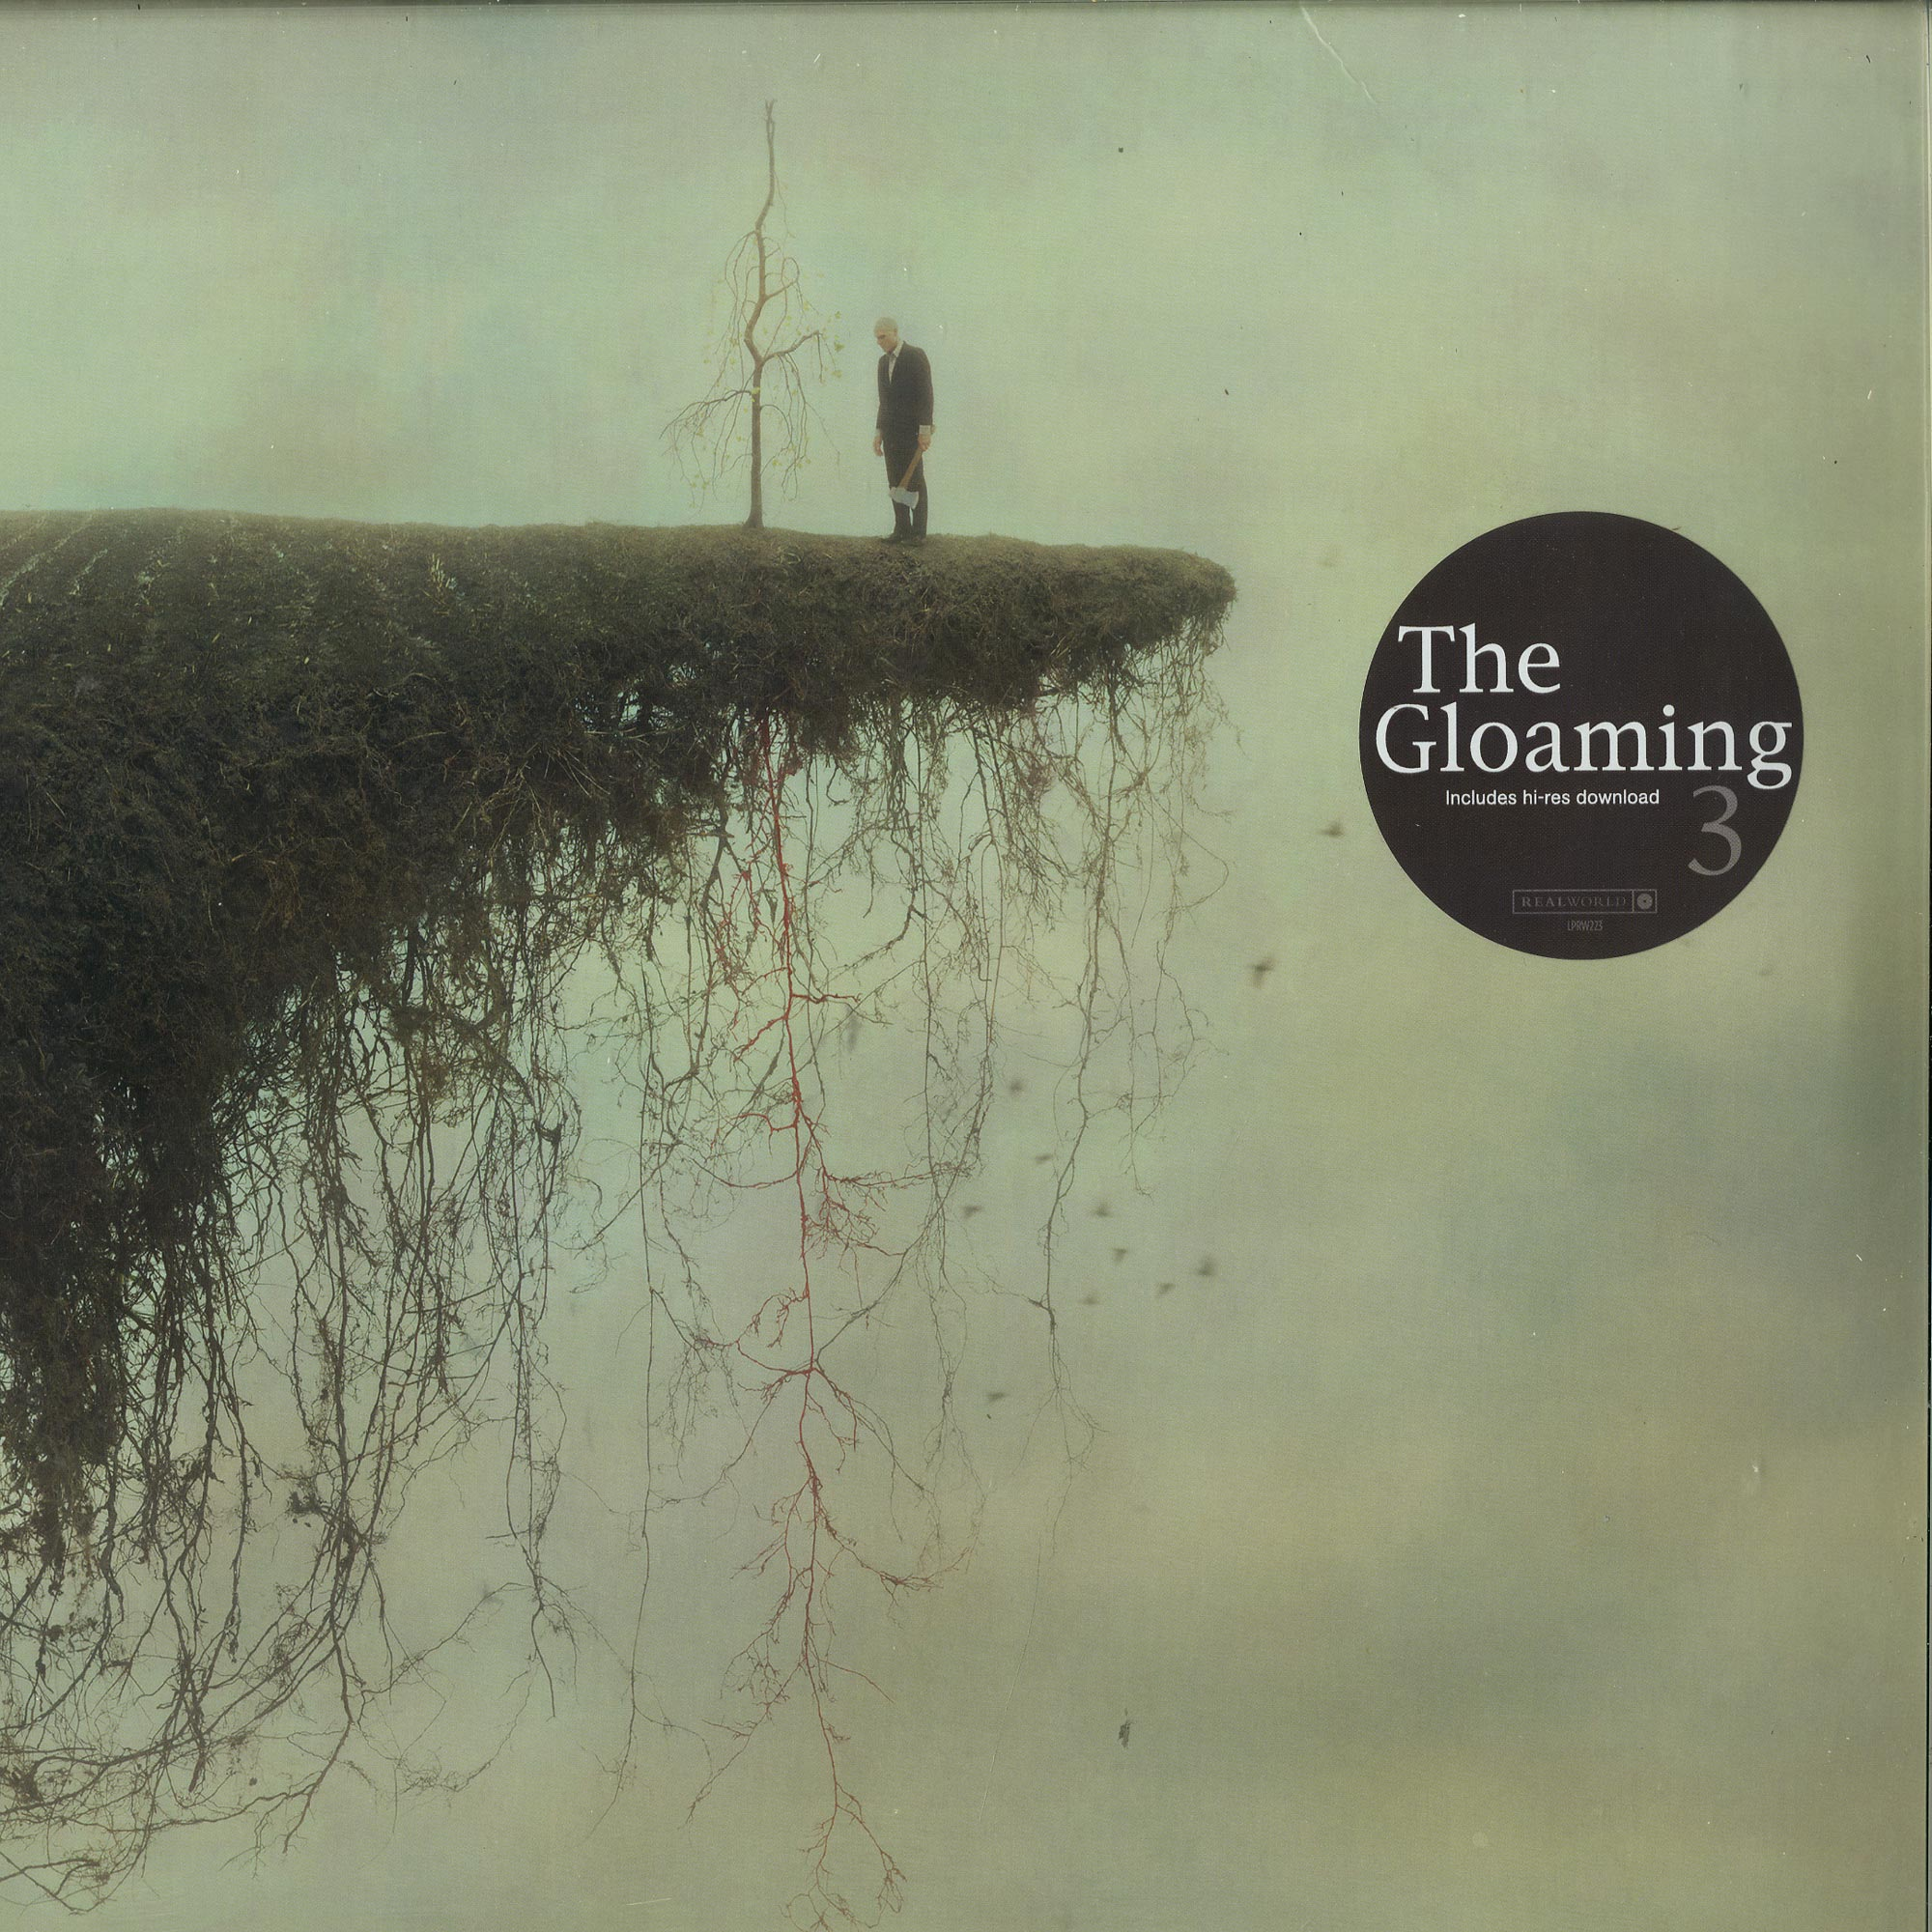 The Gloaming - THE GLOAMING 3